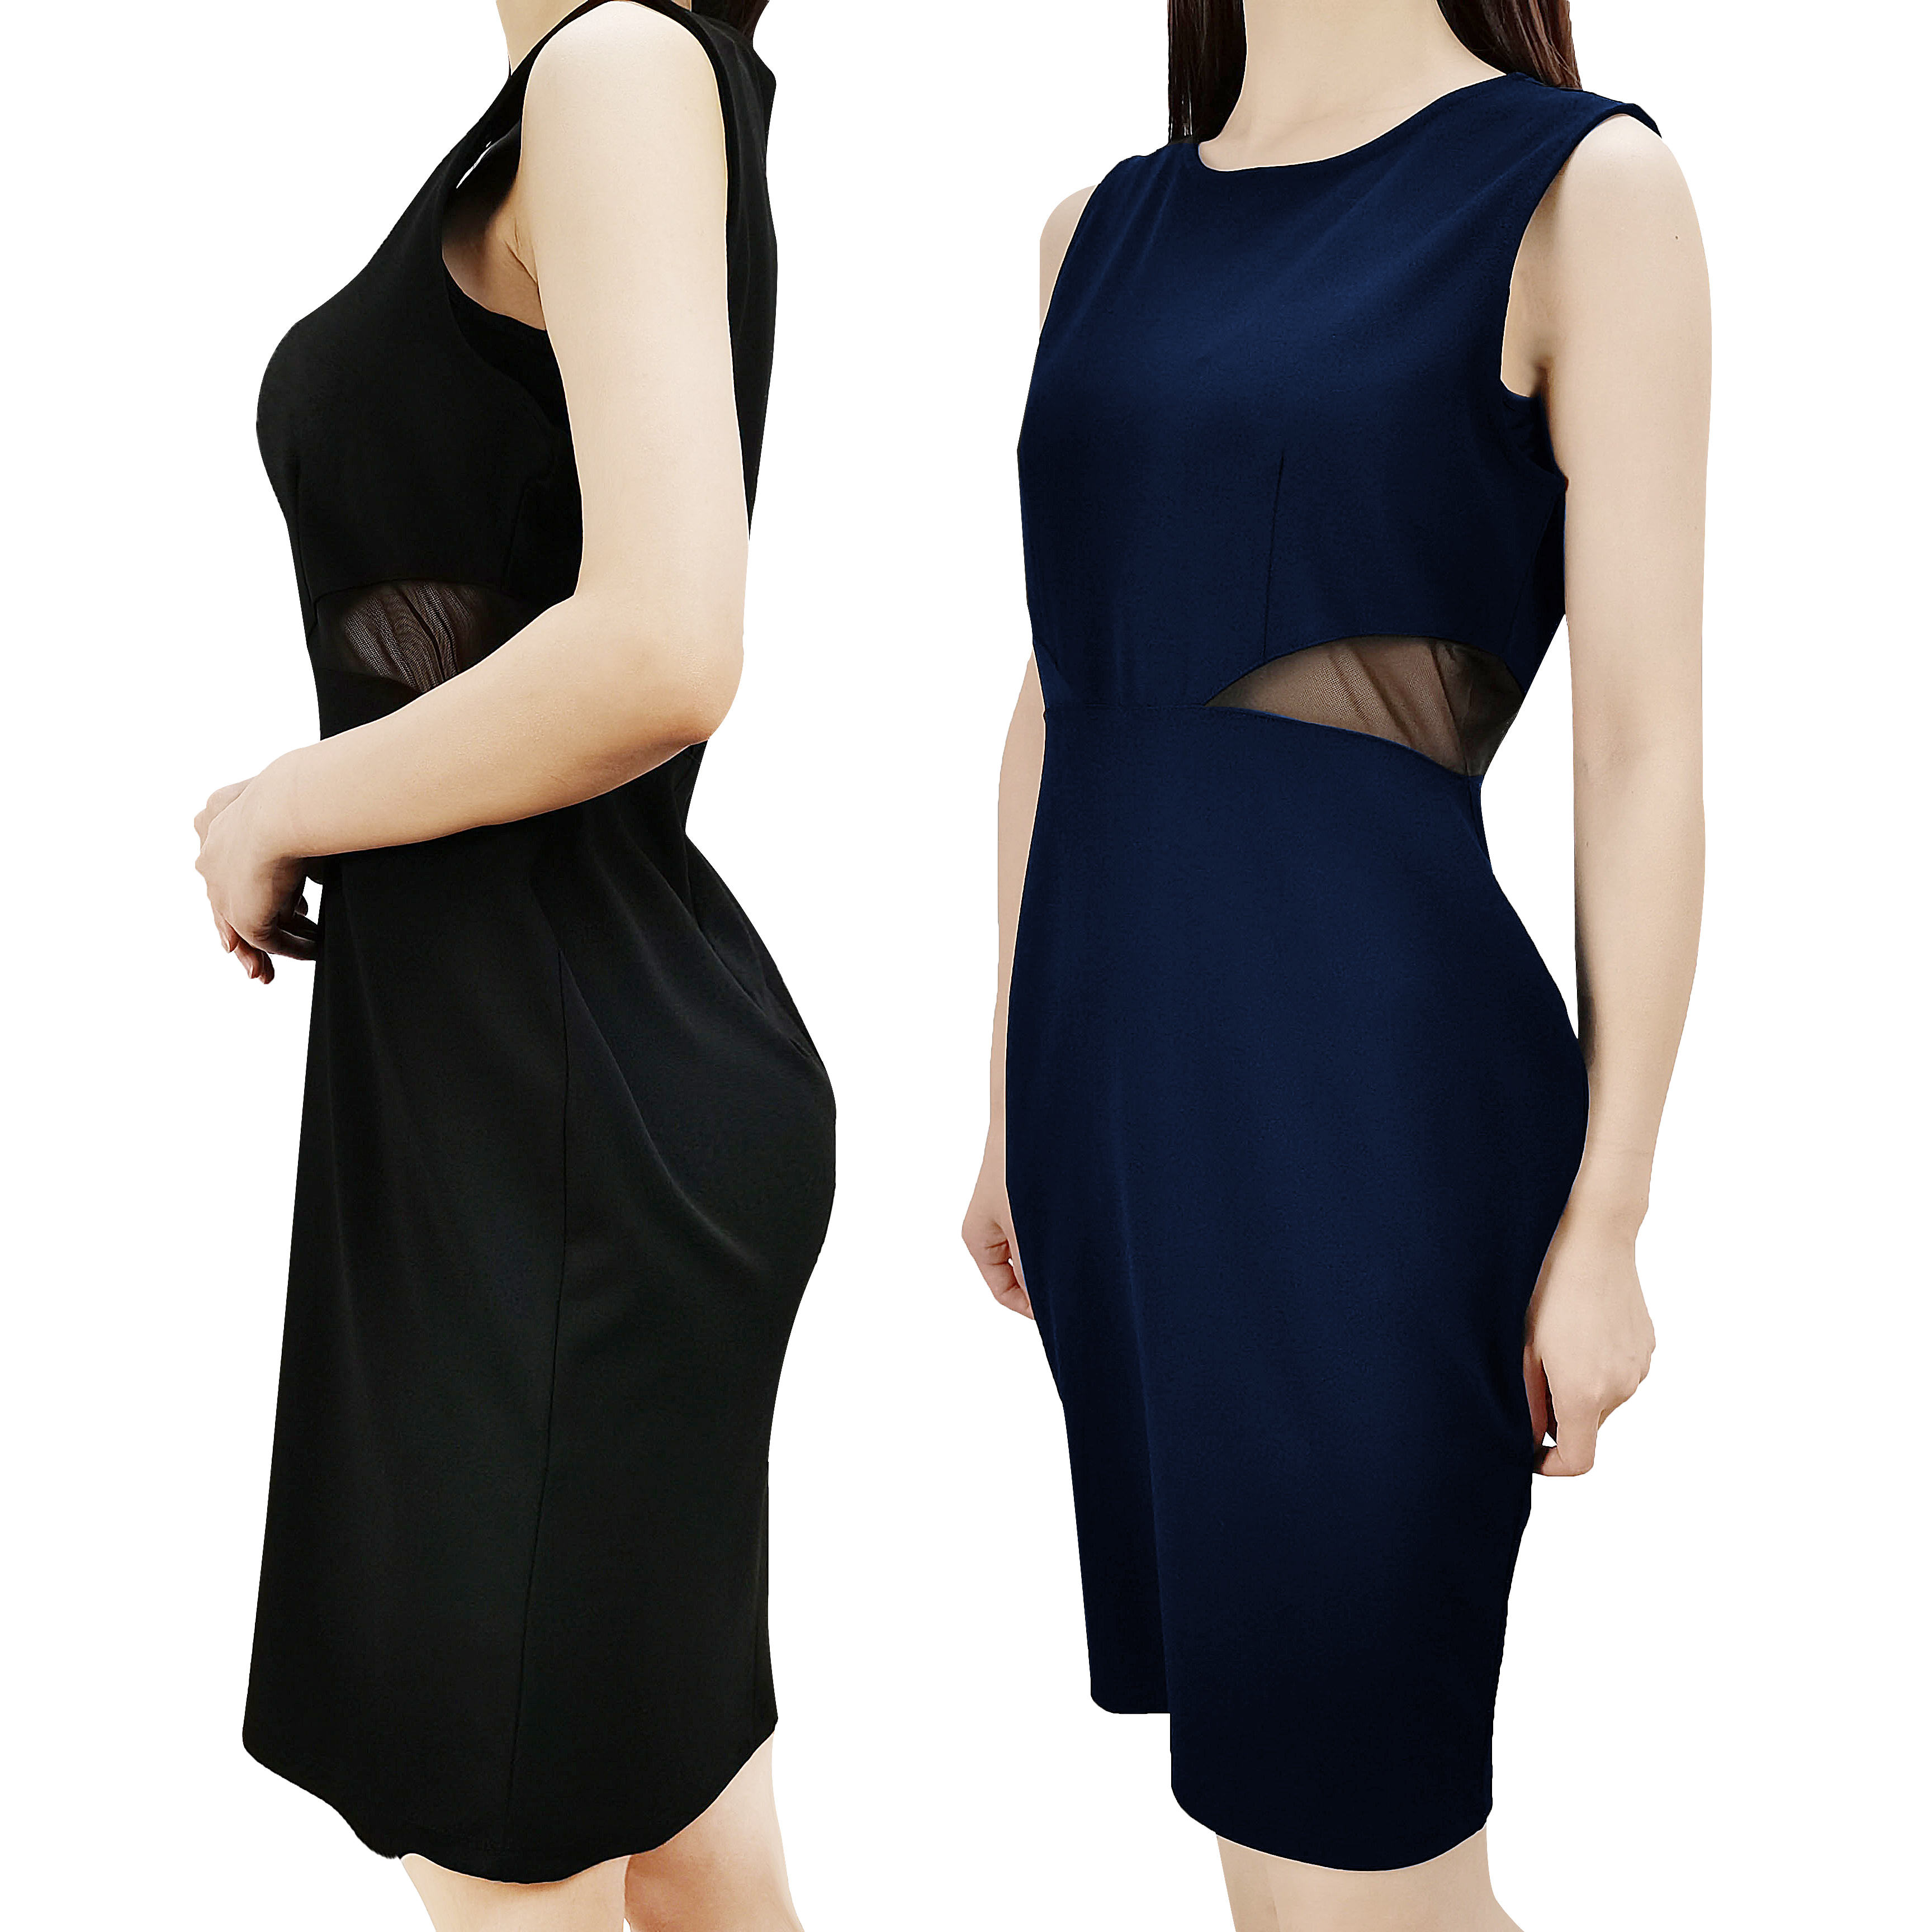 casual evening club women's dresses,summer career black office ladies dress,dresses women lady elegant